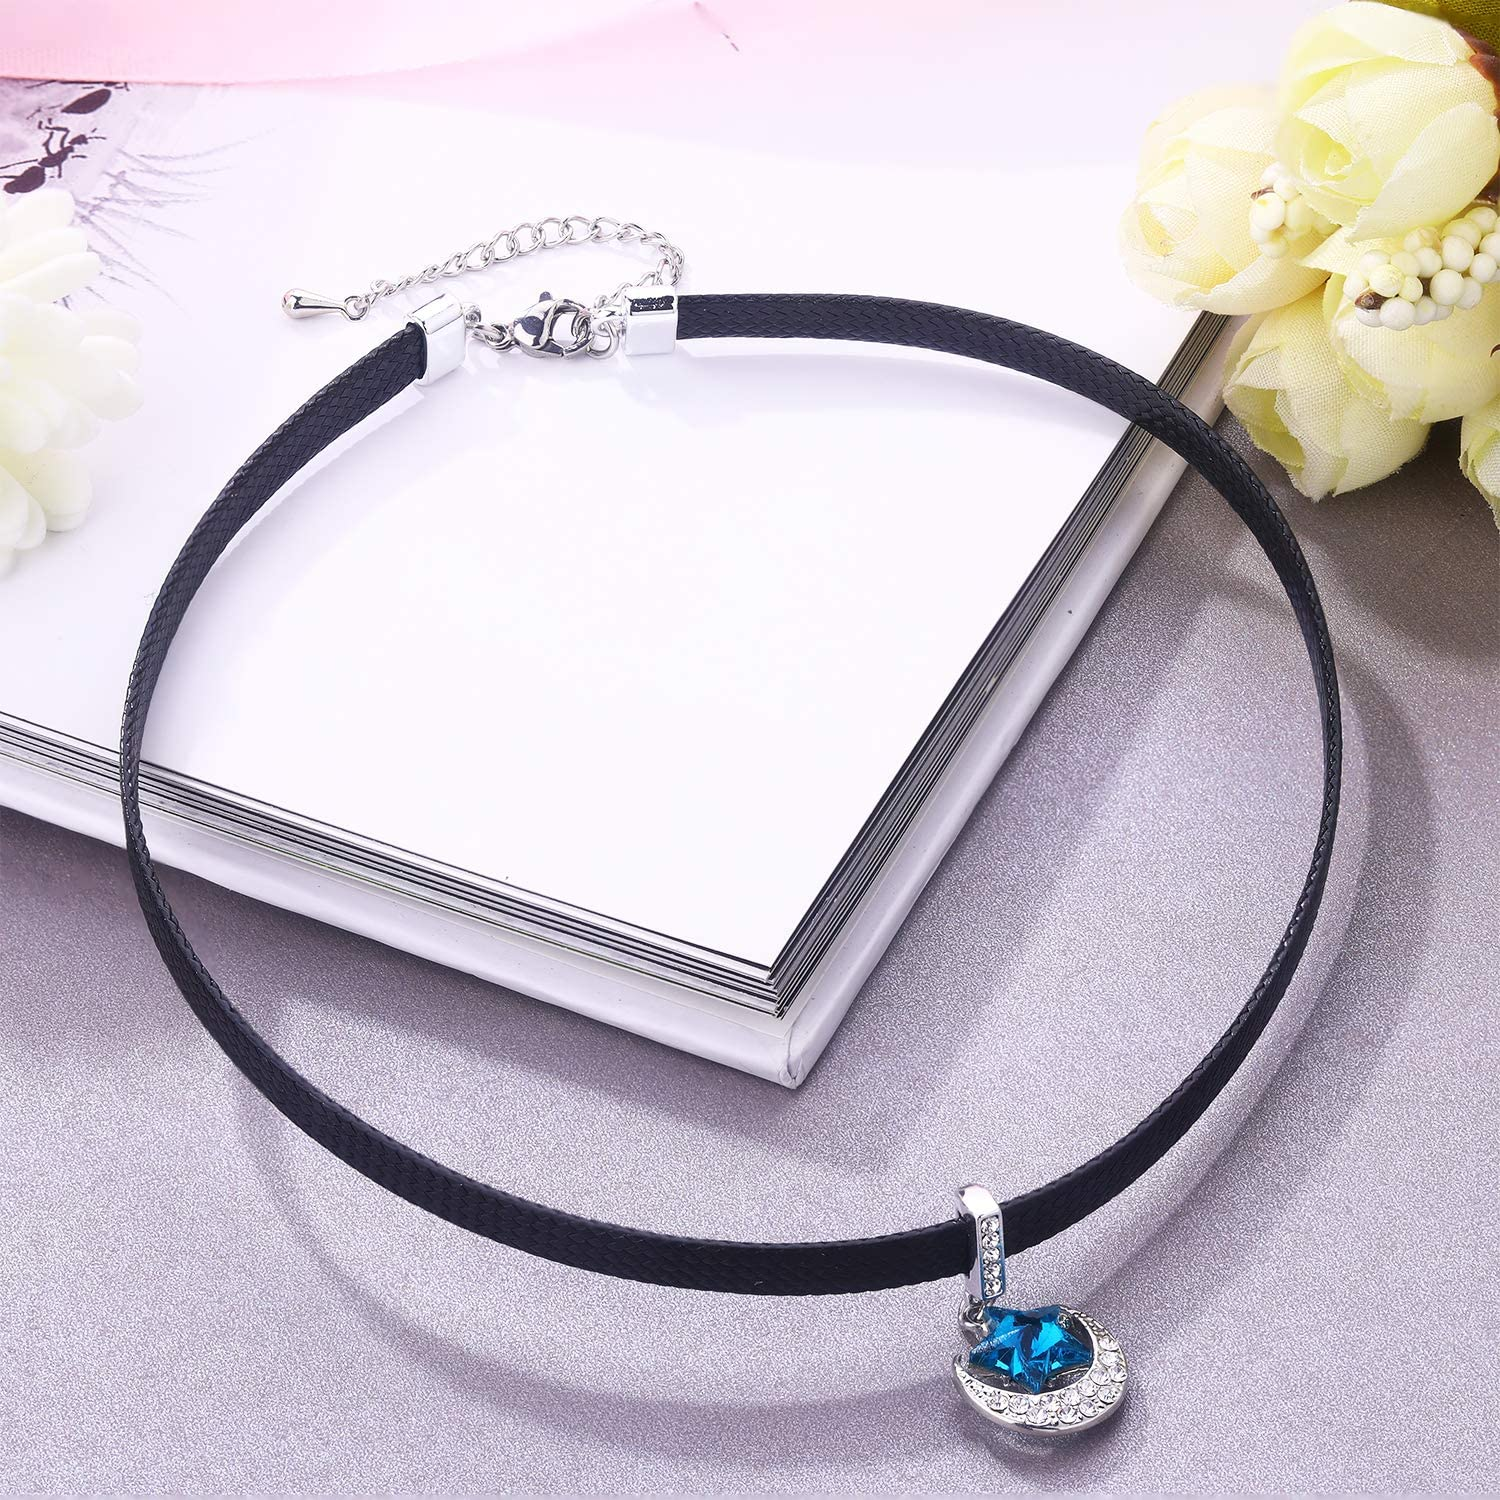 LVEN Black Choker Necklace for Women,Gold//Siver Tone Choker Necklace with Elegant Pendant